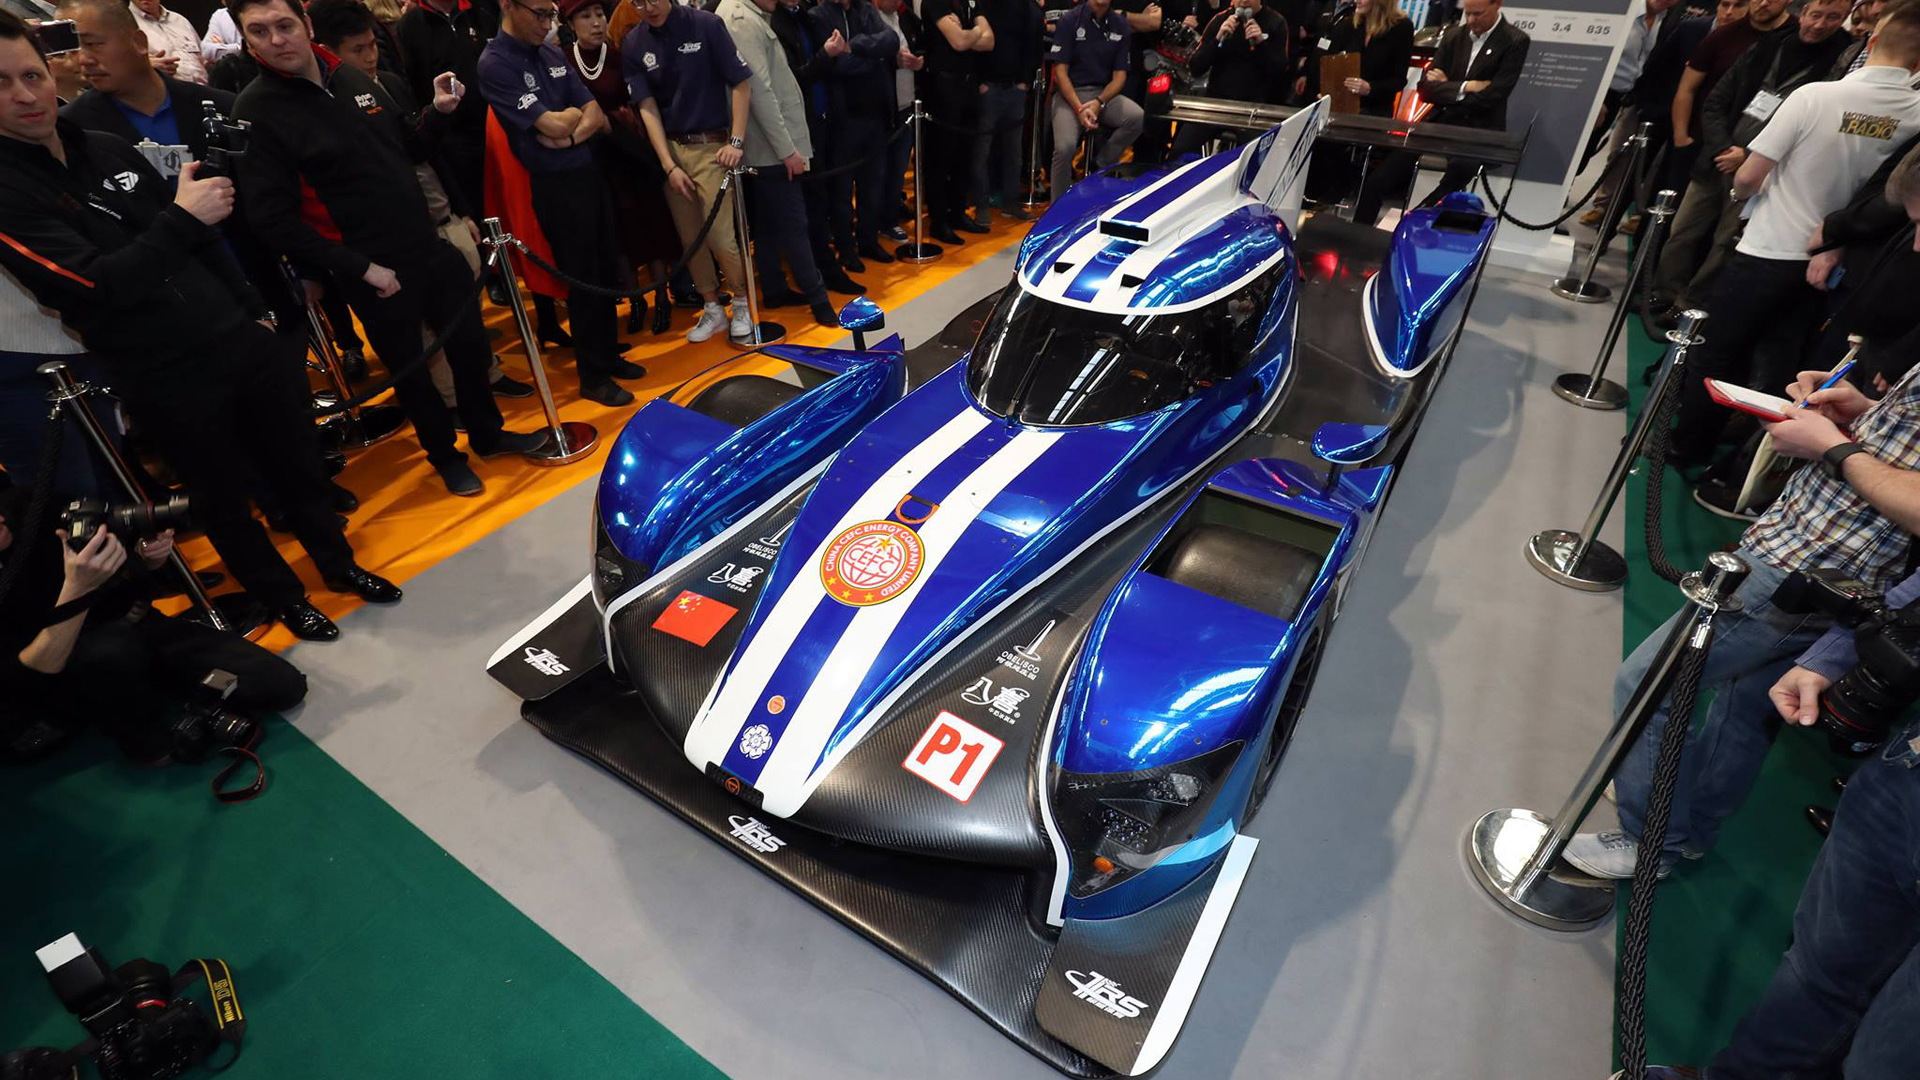 2018/2019 Ginetta G60-LT-P1 LMP1 race car